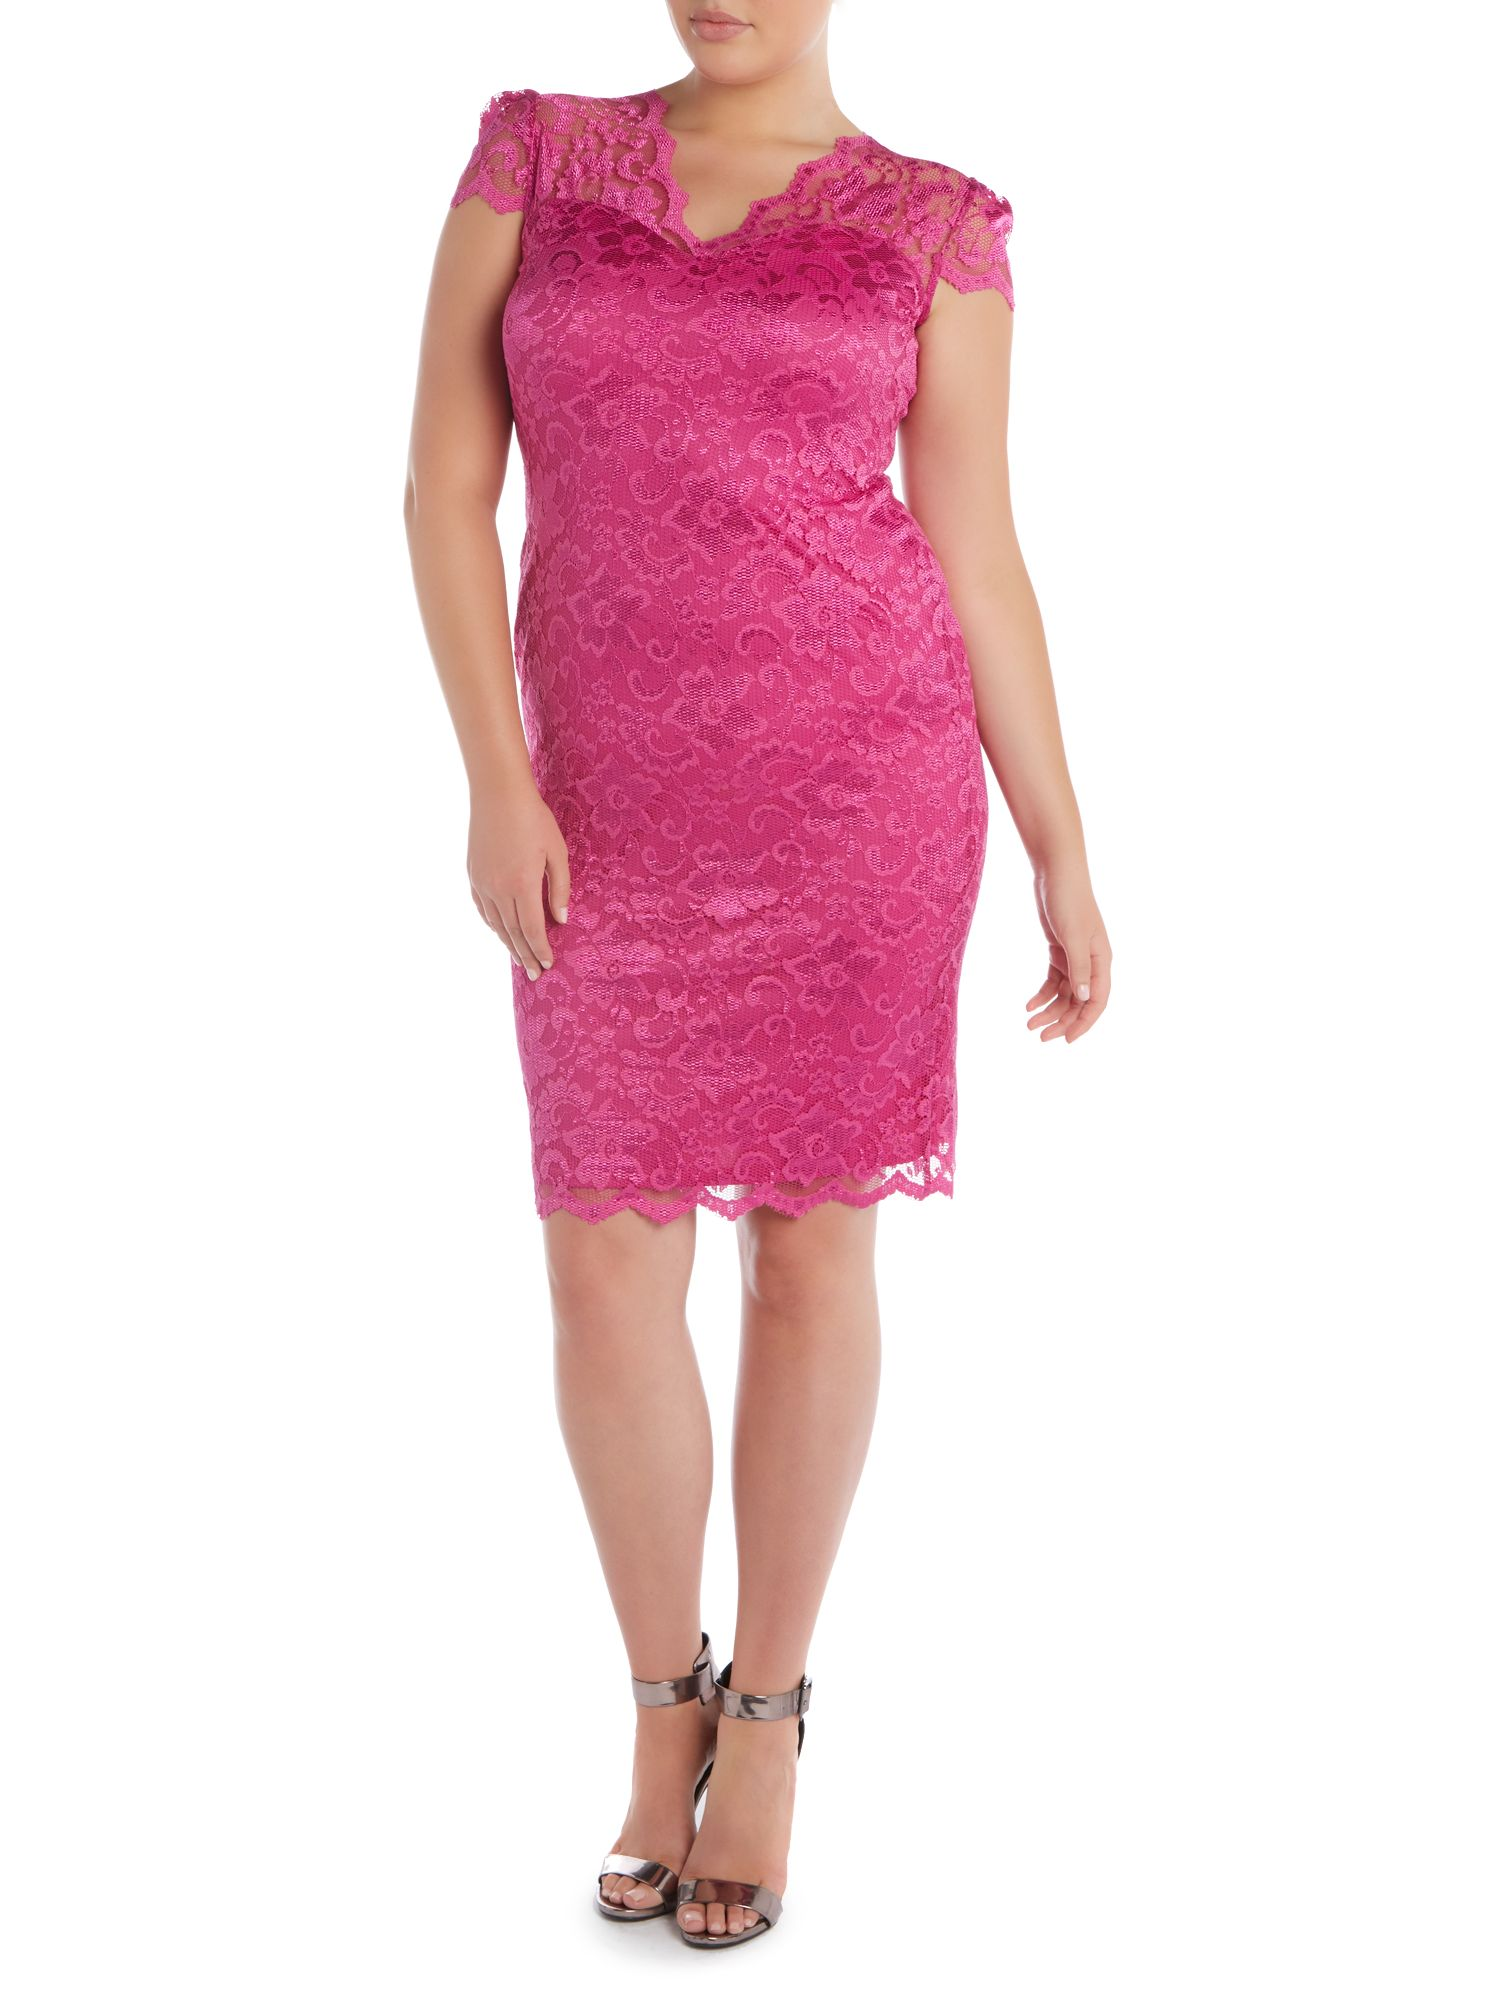 Cap sleeved lace bodycon dress